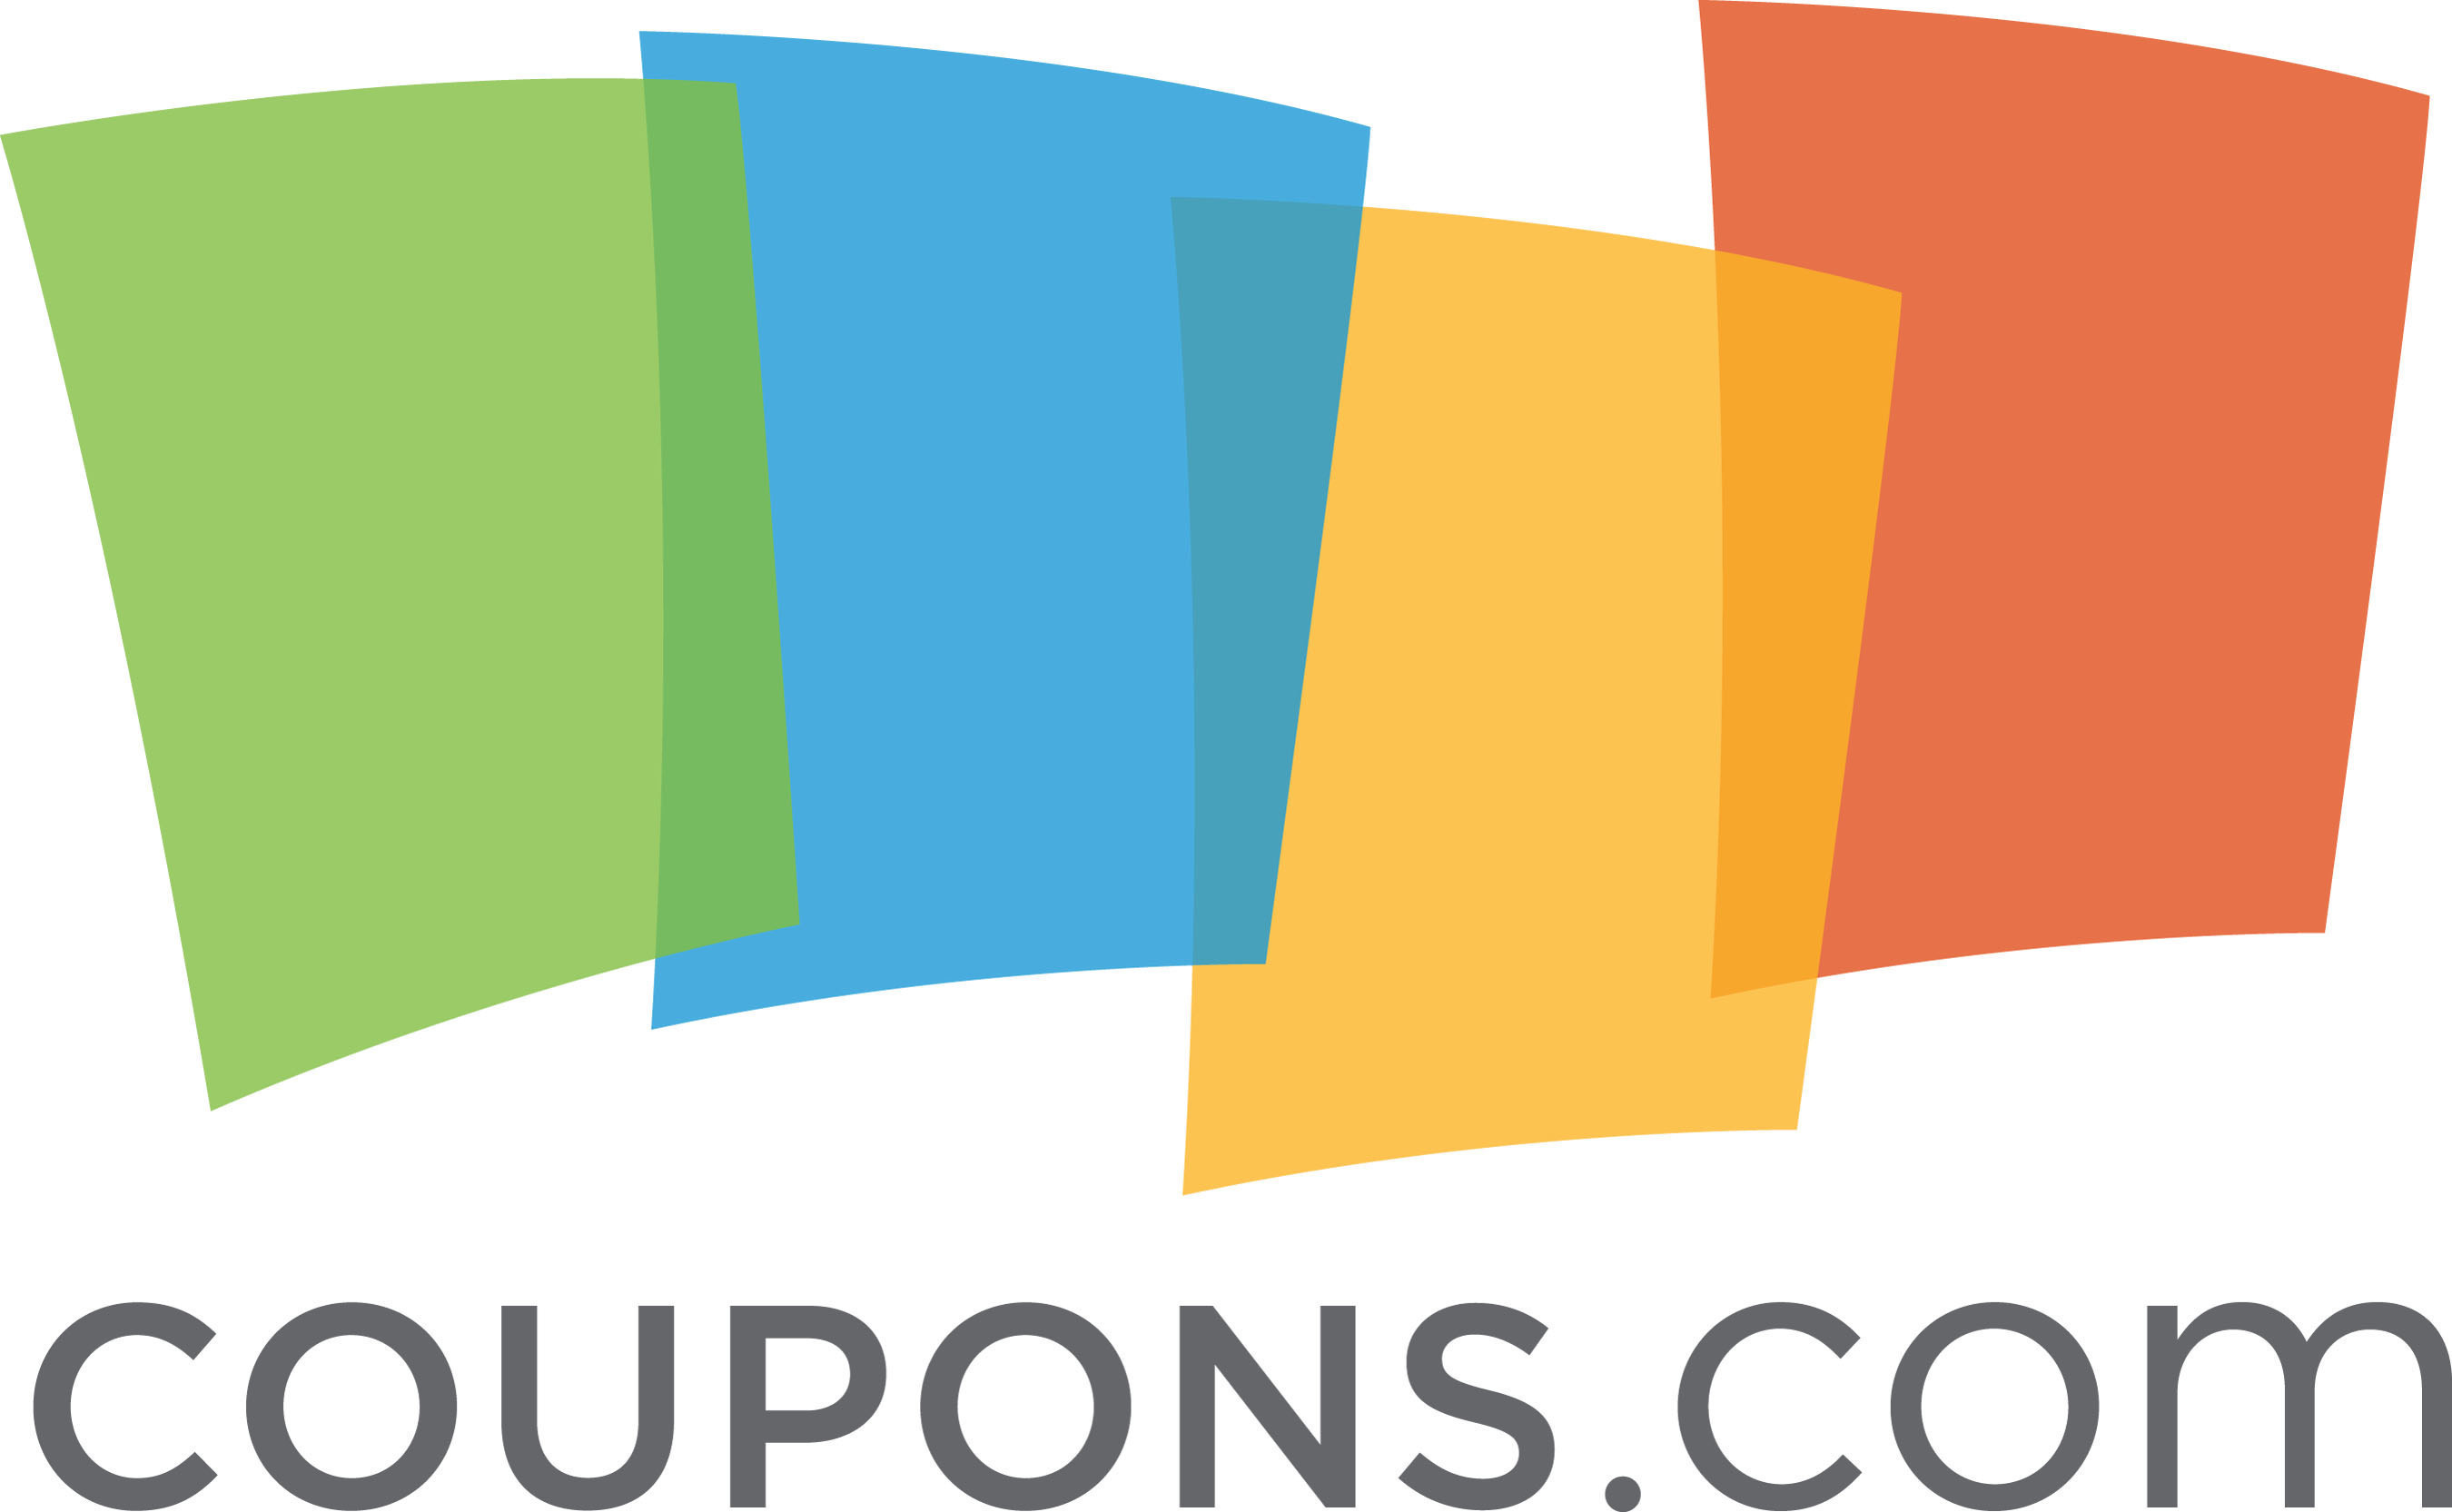 Coupons.com Incorporated operates a leading digital promotion platform that connects great brands and retailers with consumers.